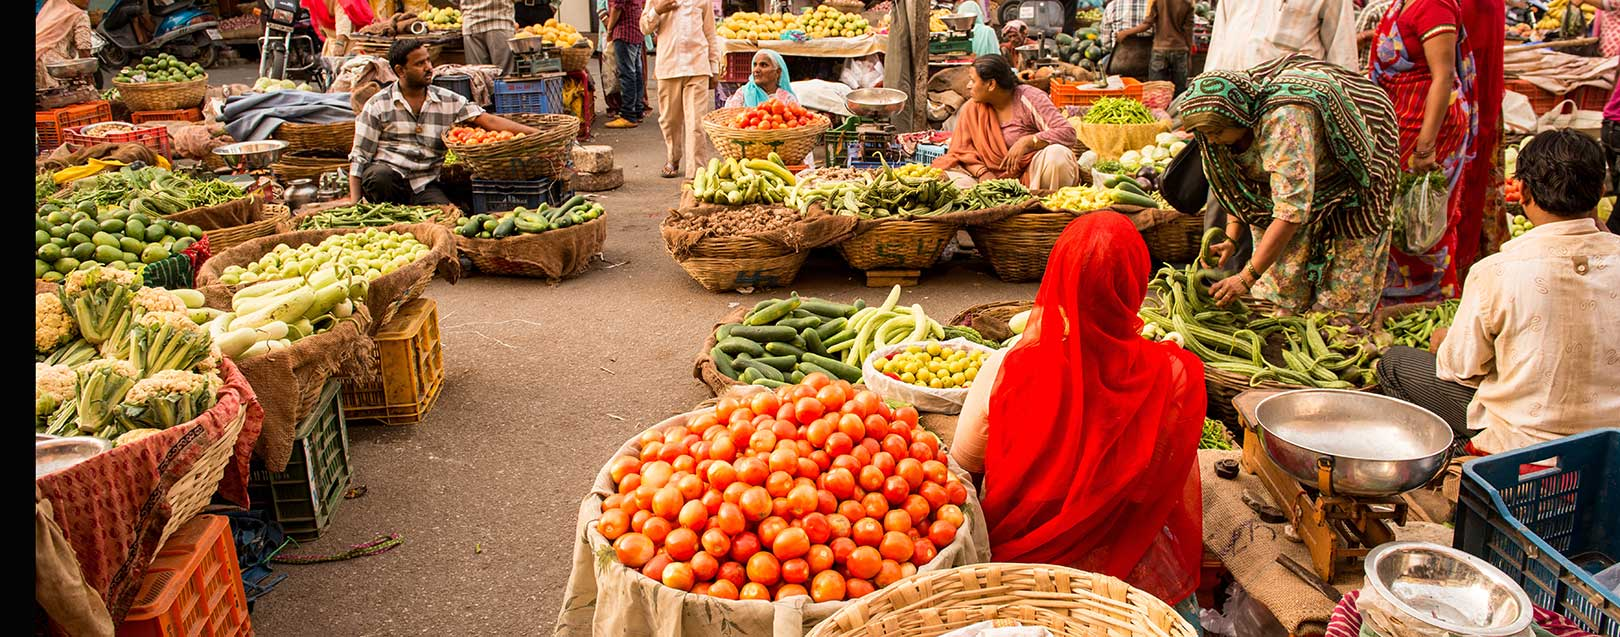 Wholesale inflation cools to 5.7% even as food prices heat up